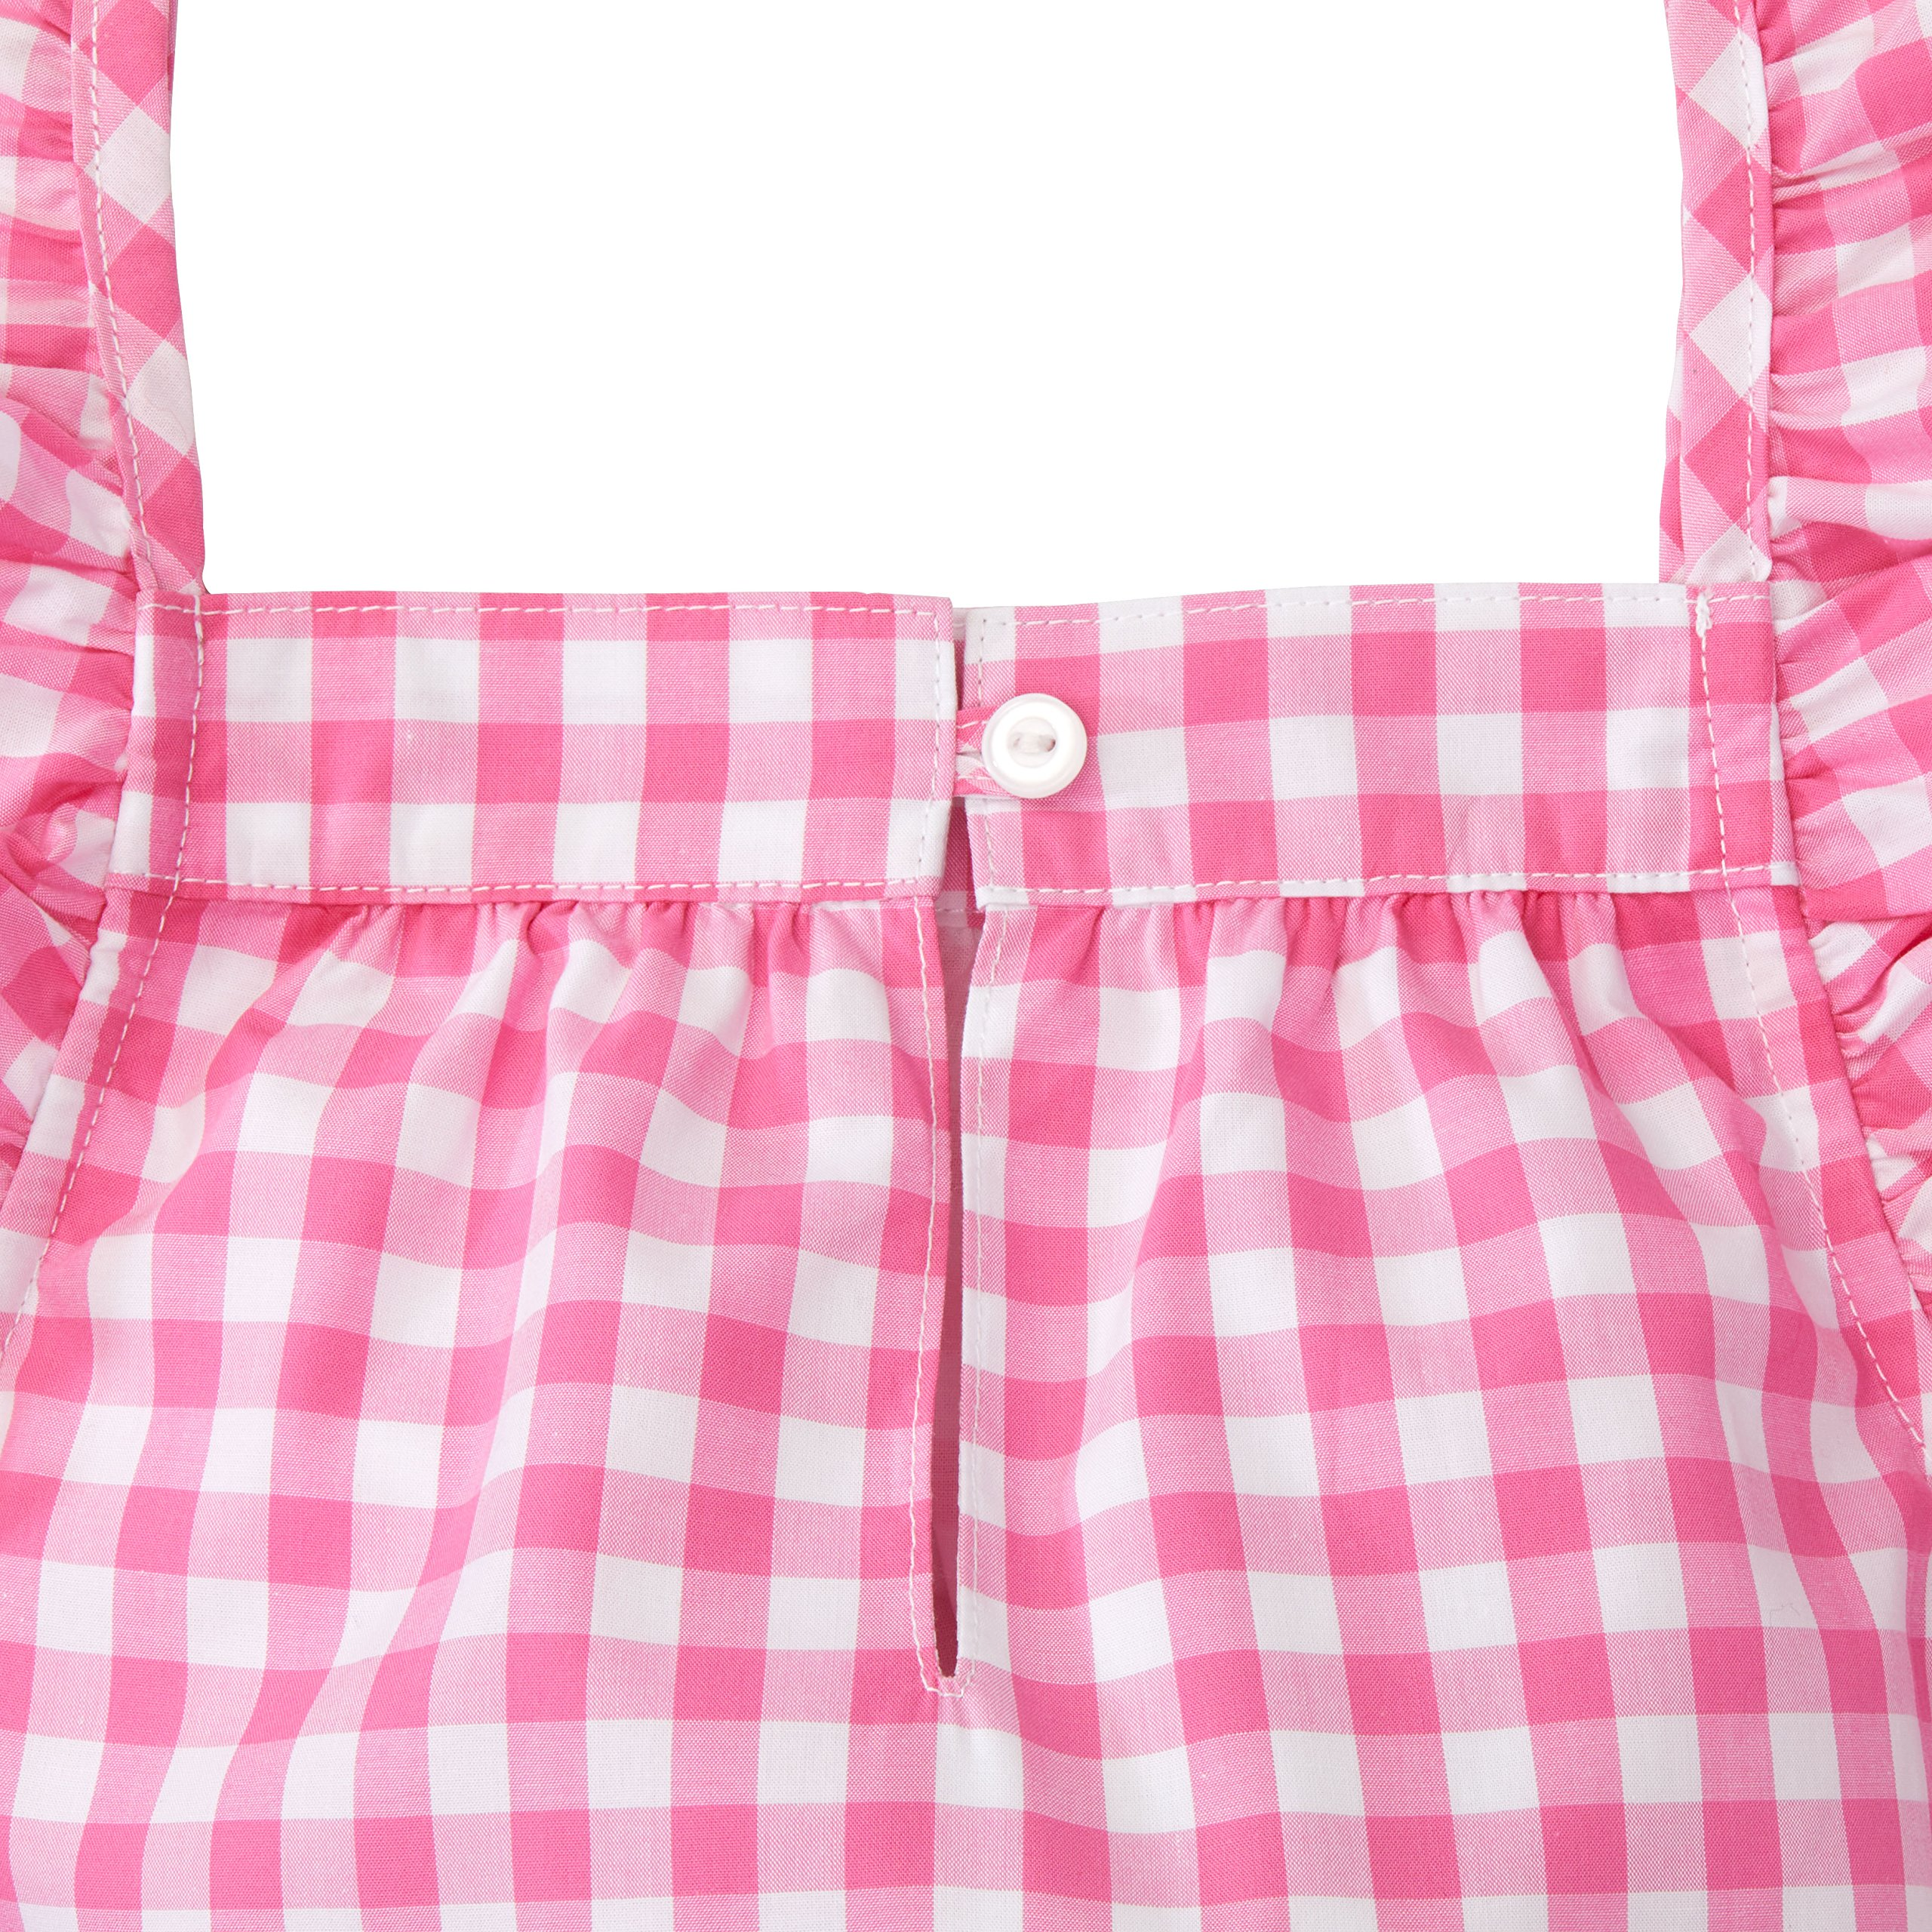 Hope & Henry Girls' Pink Gingham Frill Sleeve Woven Dress Made with Organic Cotton by Hope & Henry (Image #4)